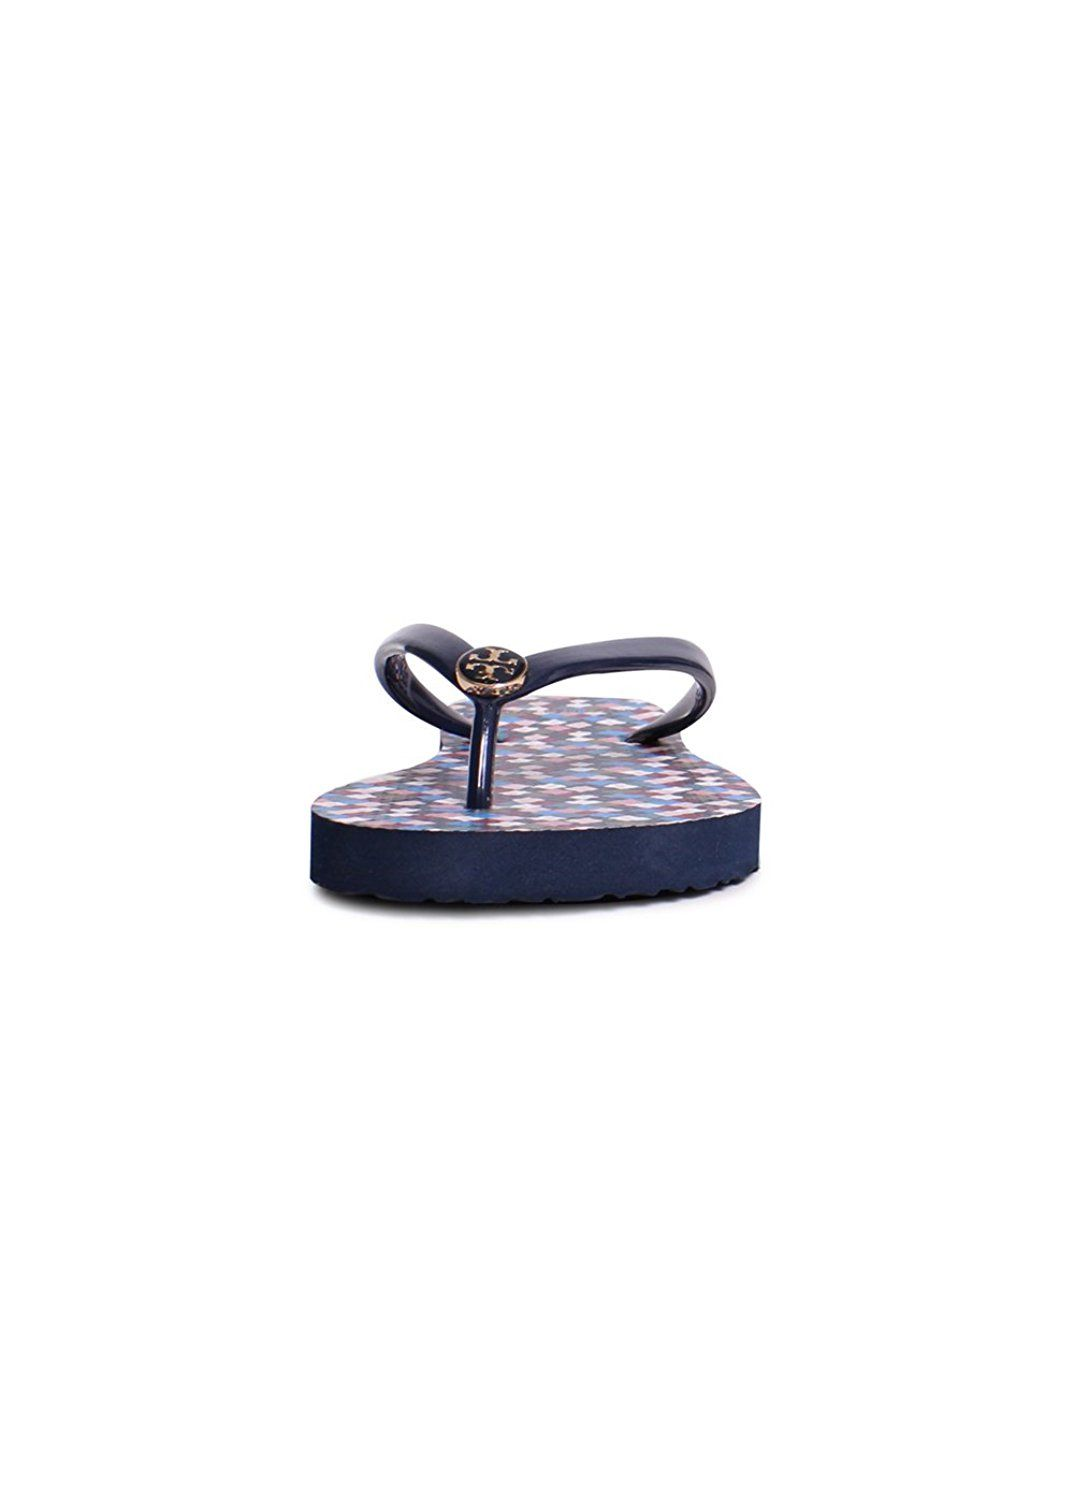 4d58848fdce3 Tory Burch Thin Printed PVC Flip Flop Sandals In Tory Navy Prism     Click  image to read more details.  sandals